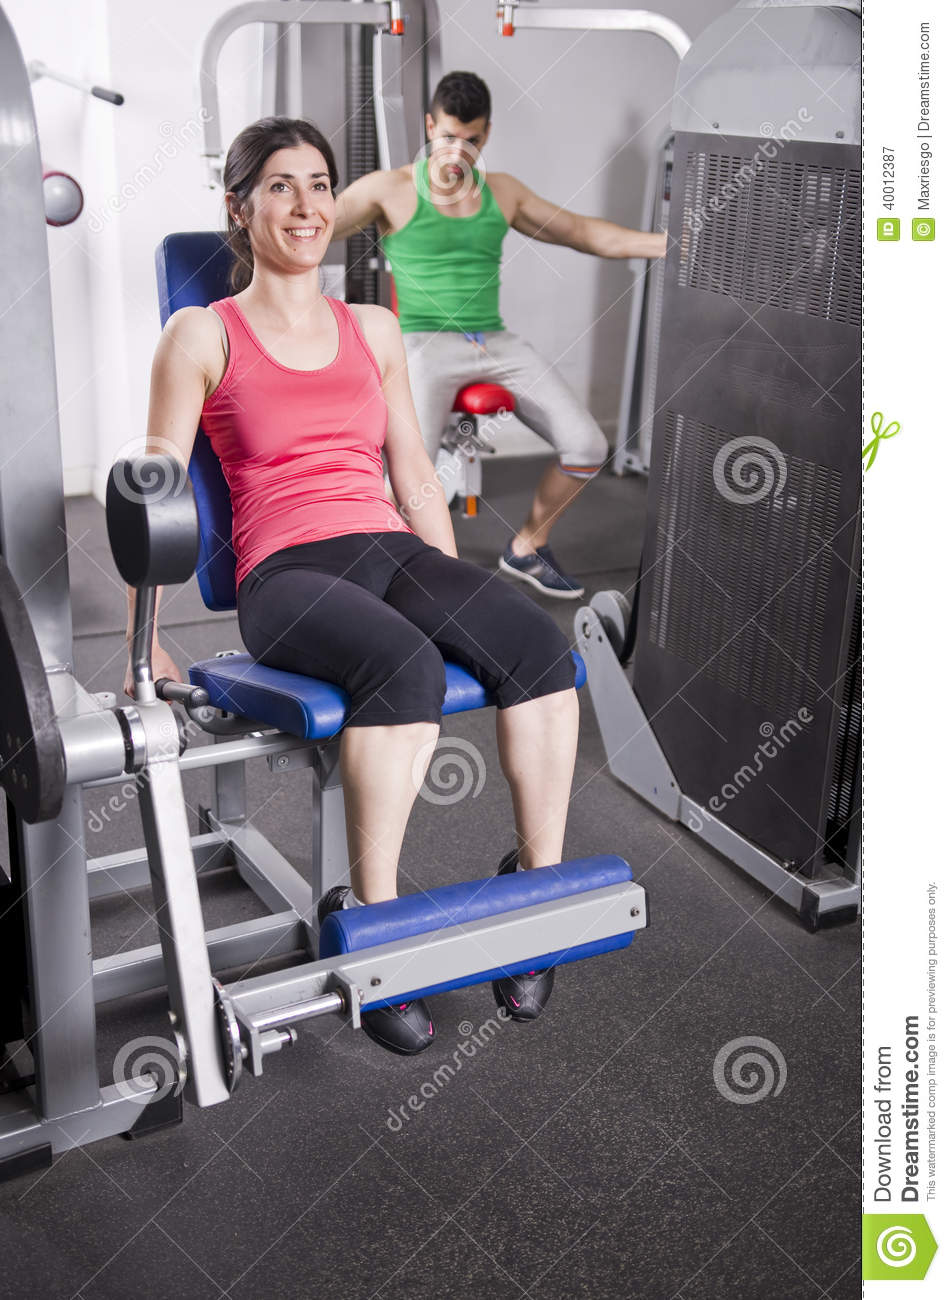 GyM People Stock Photo